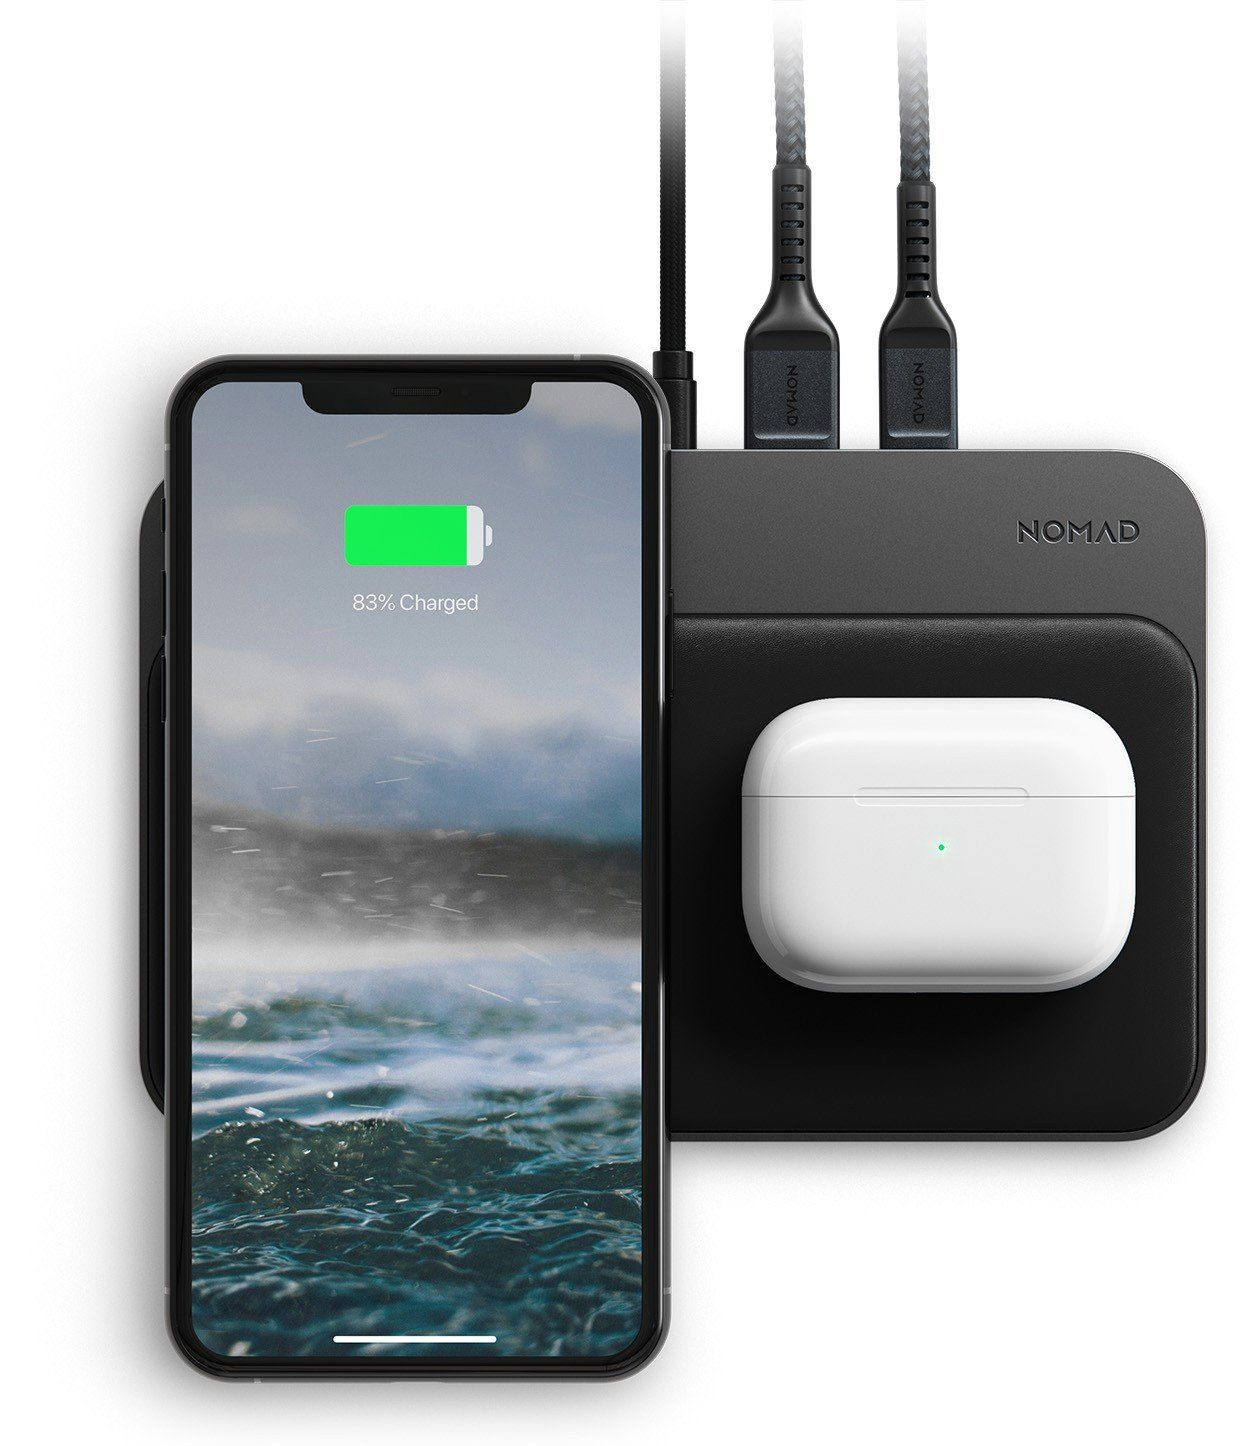 Base Station Hub Edition Wireless Charging Station Black Nomad Shop Iphone Cases Watch Charger Apple Watch Charger